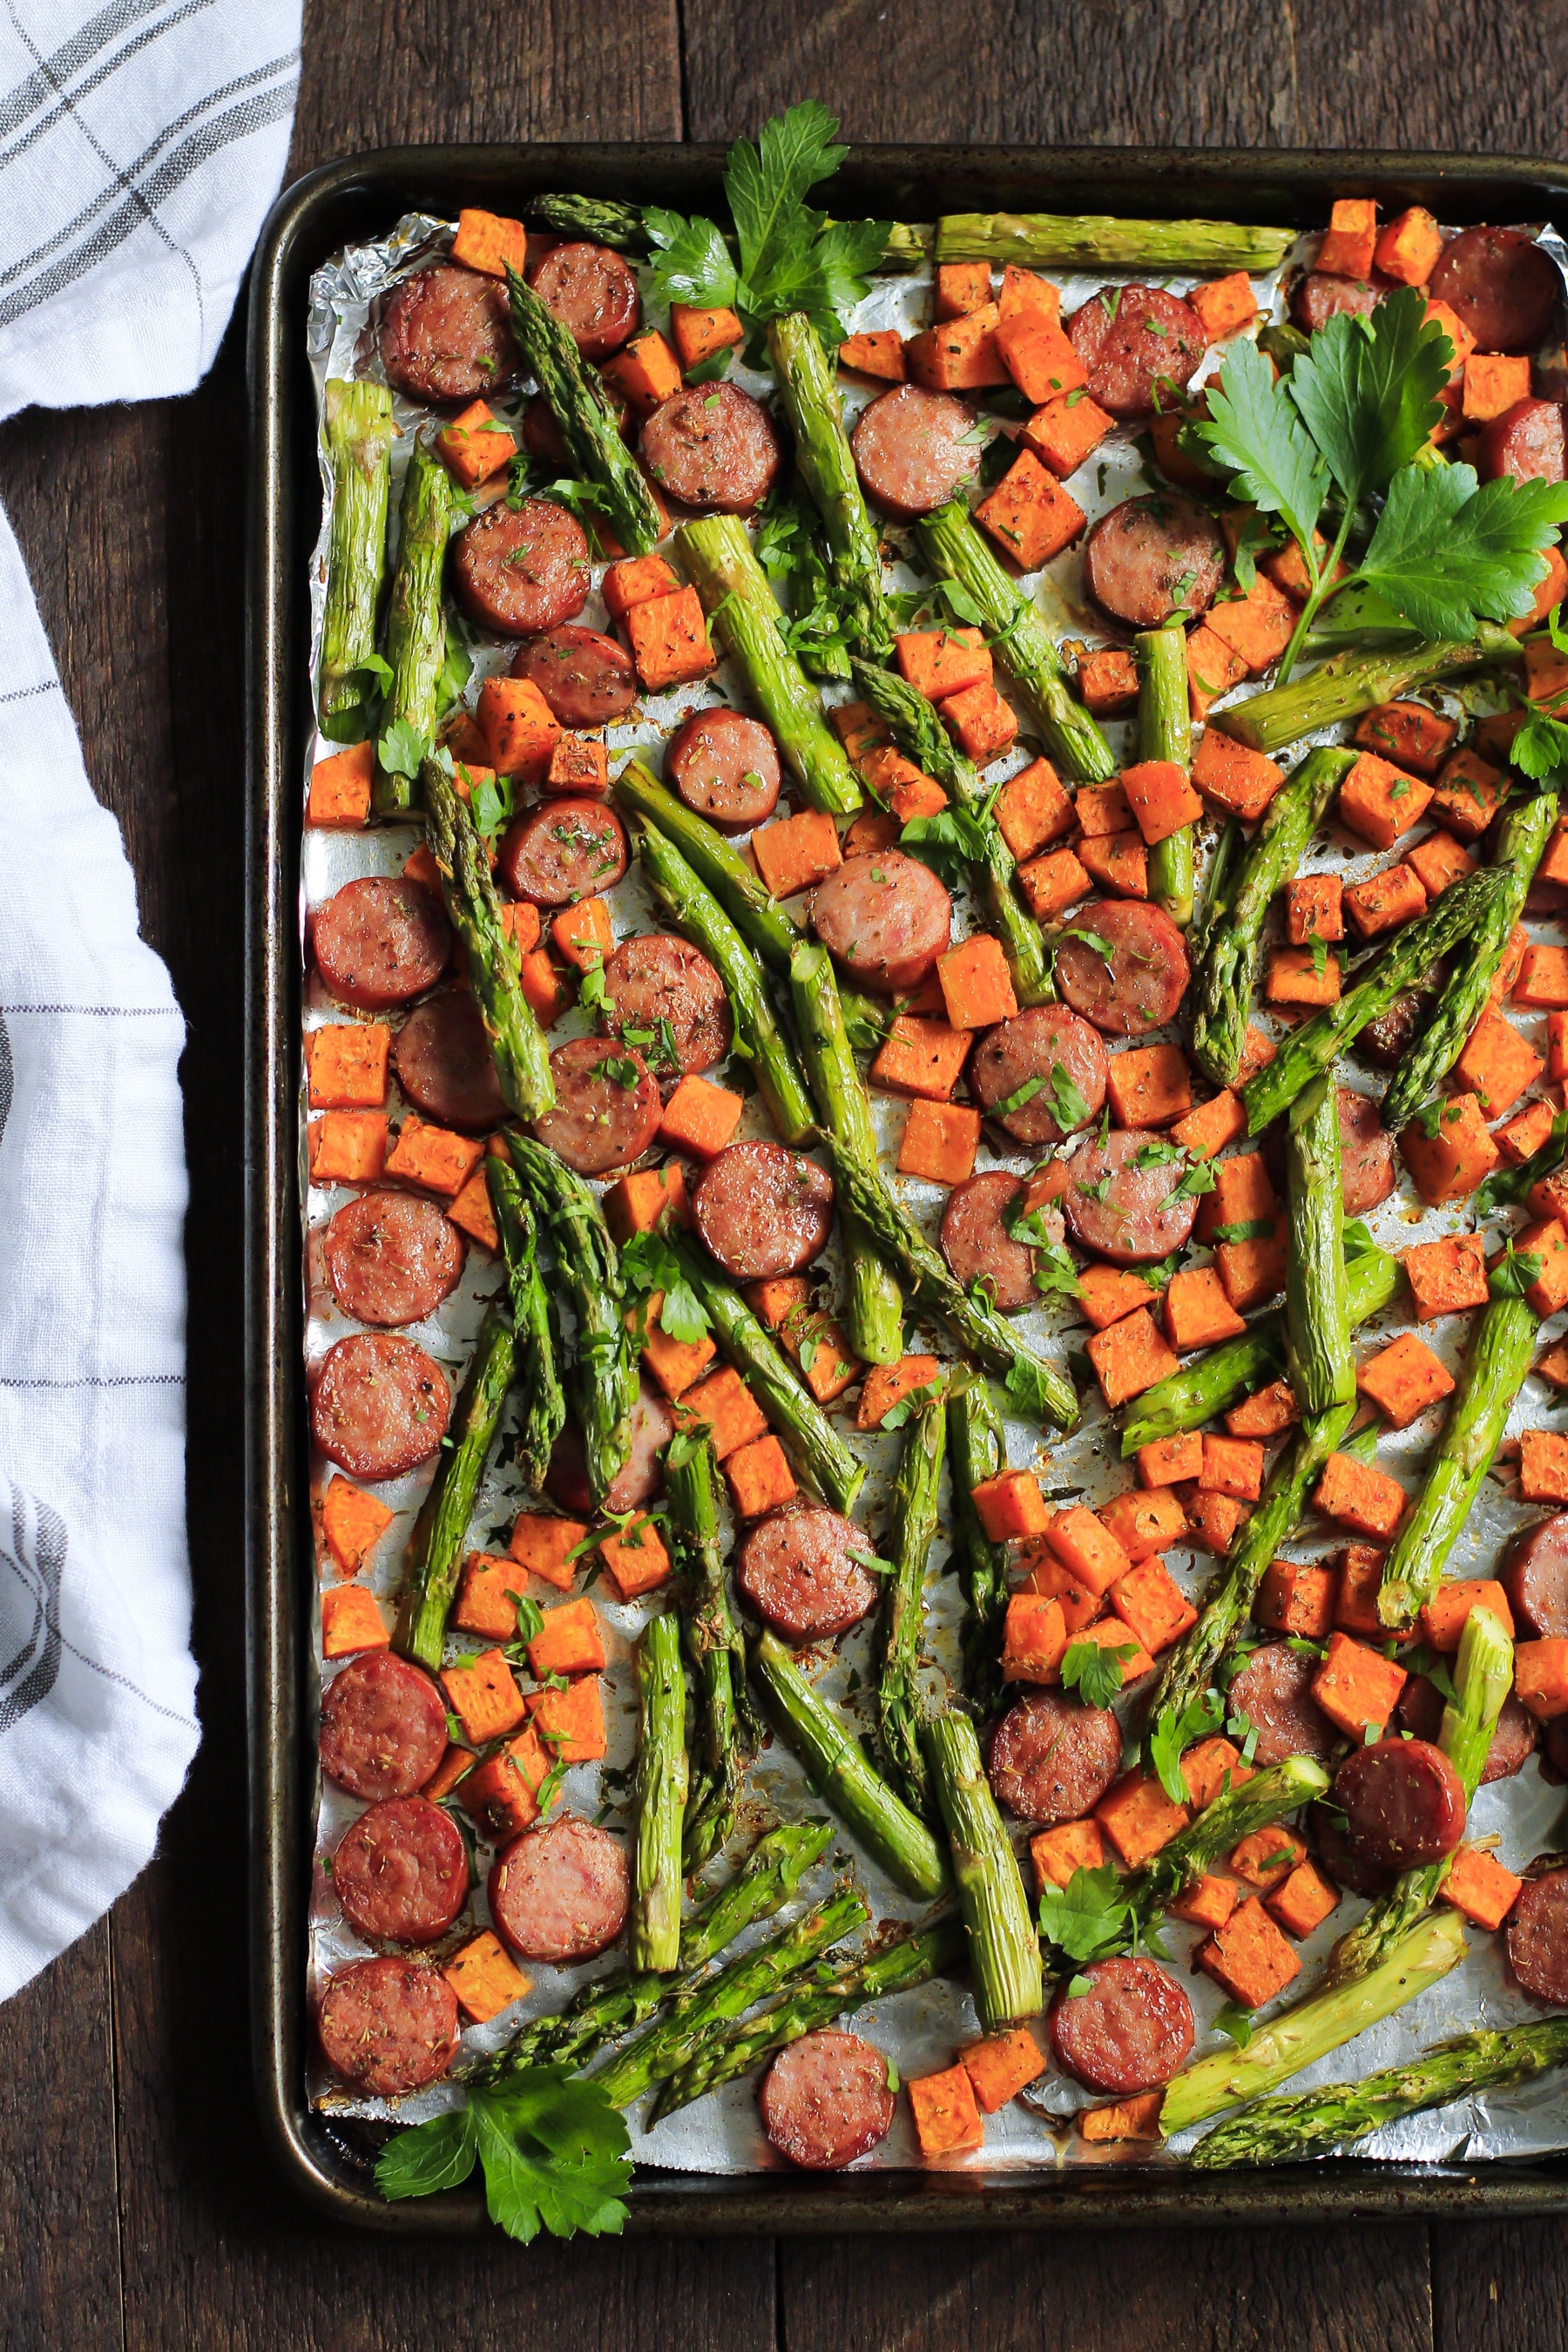 One-Pan Dinner Recipe - Sheet pan with sausage, asparagus, and sweet potatoes.